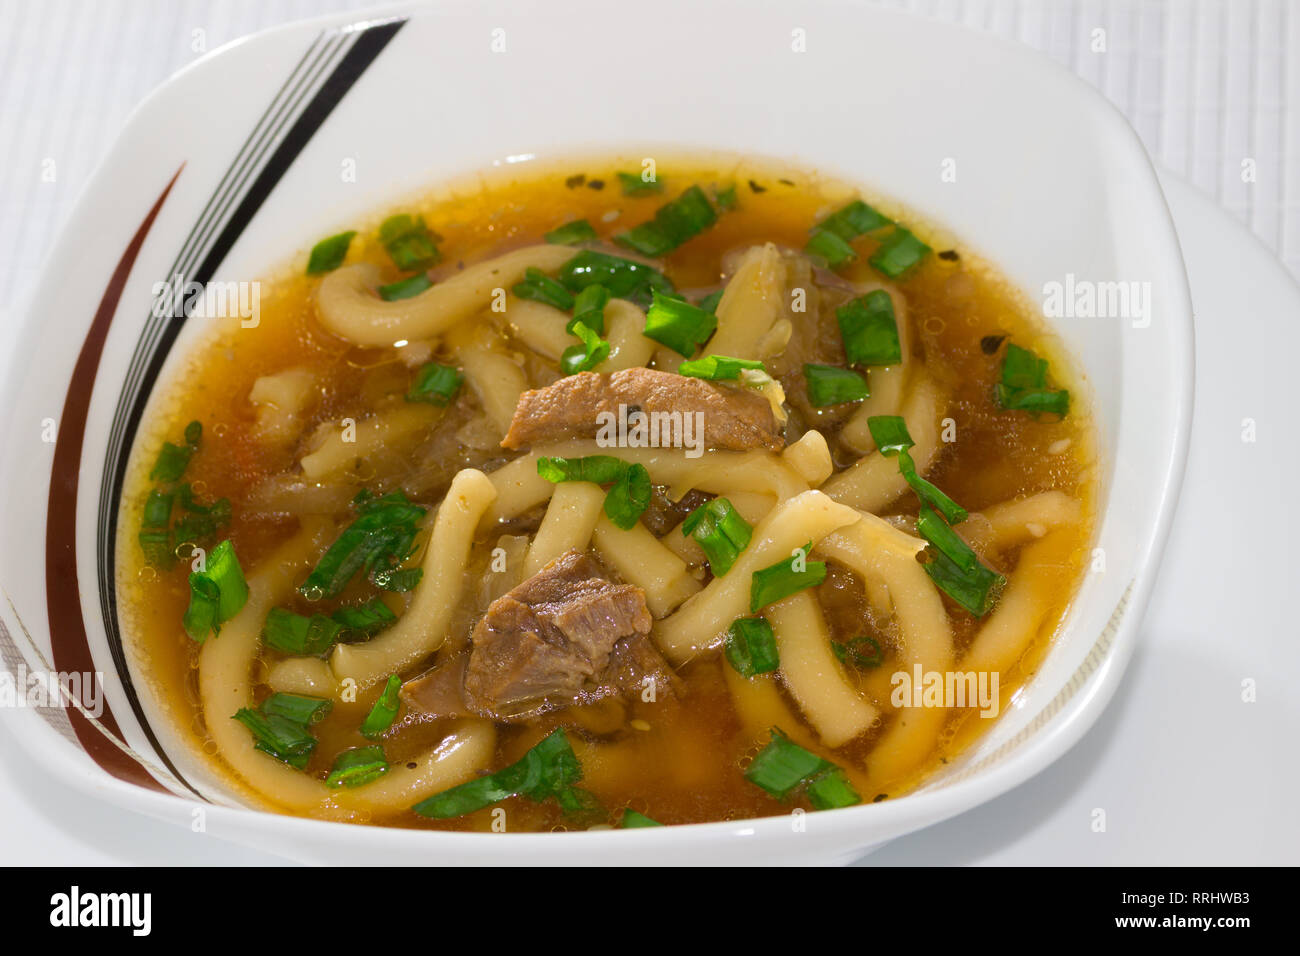 Bowl of miso soup with udon noodles, cabbage, pork and green onions with chopsticks on a bamboo napkin Stock Photo